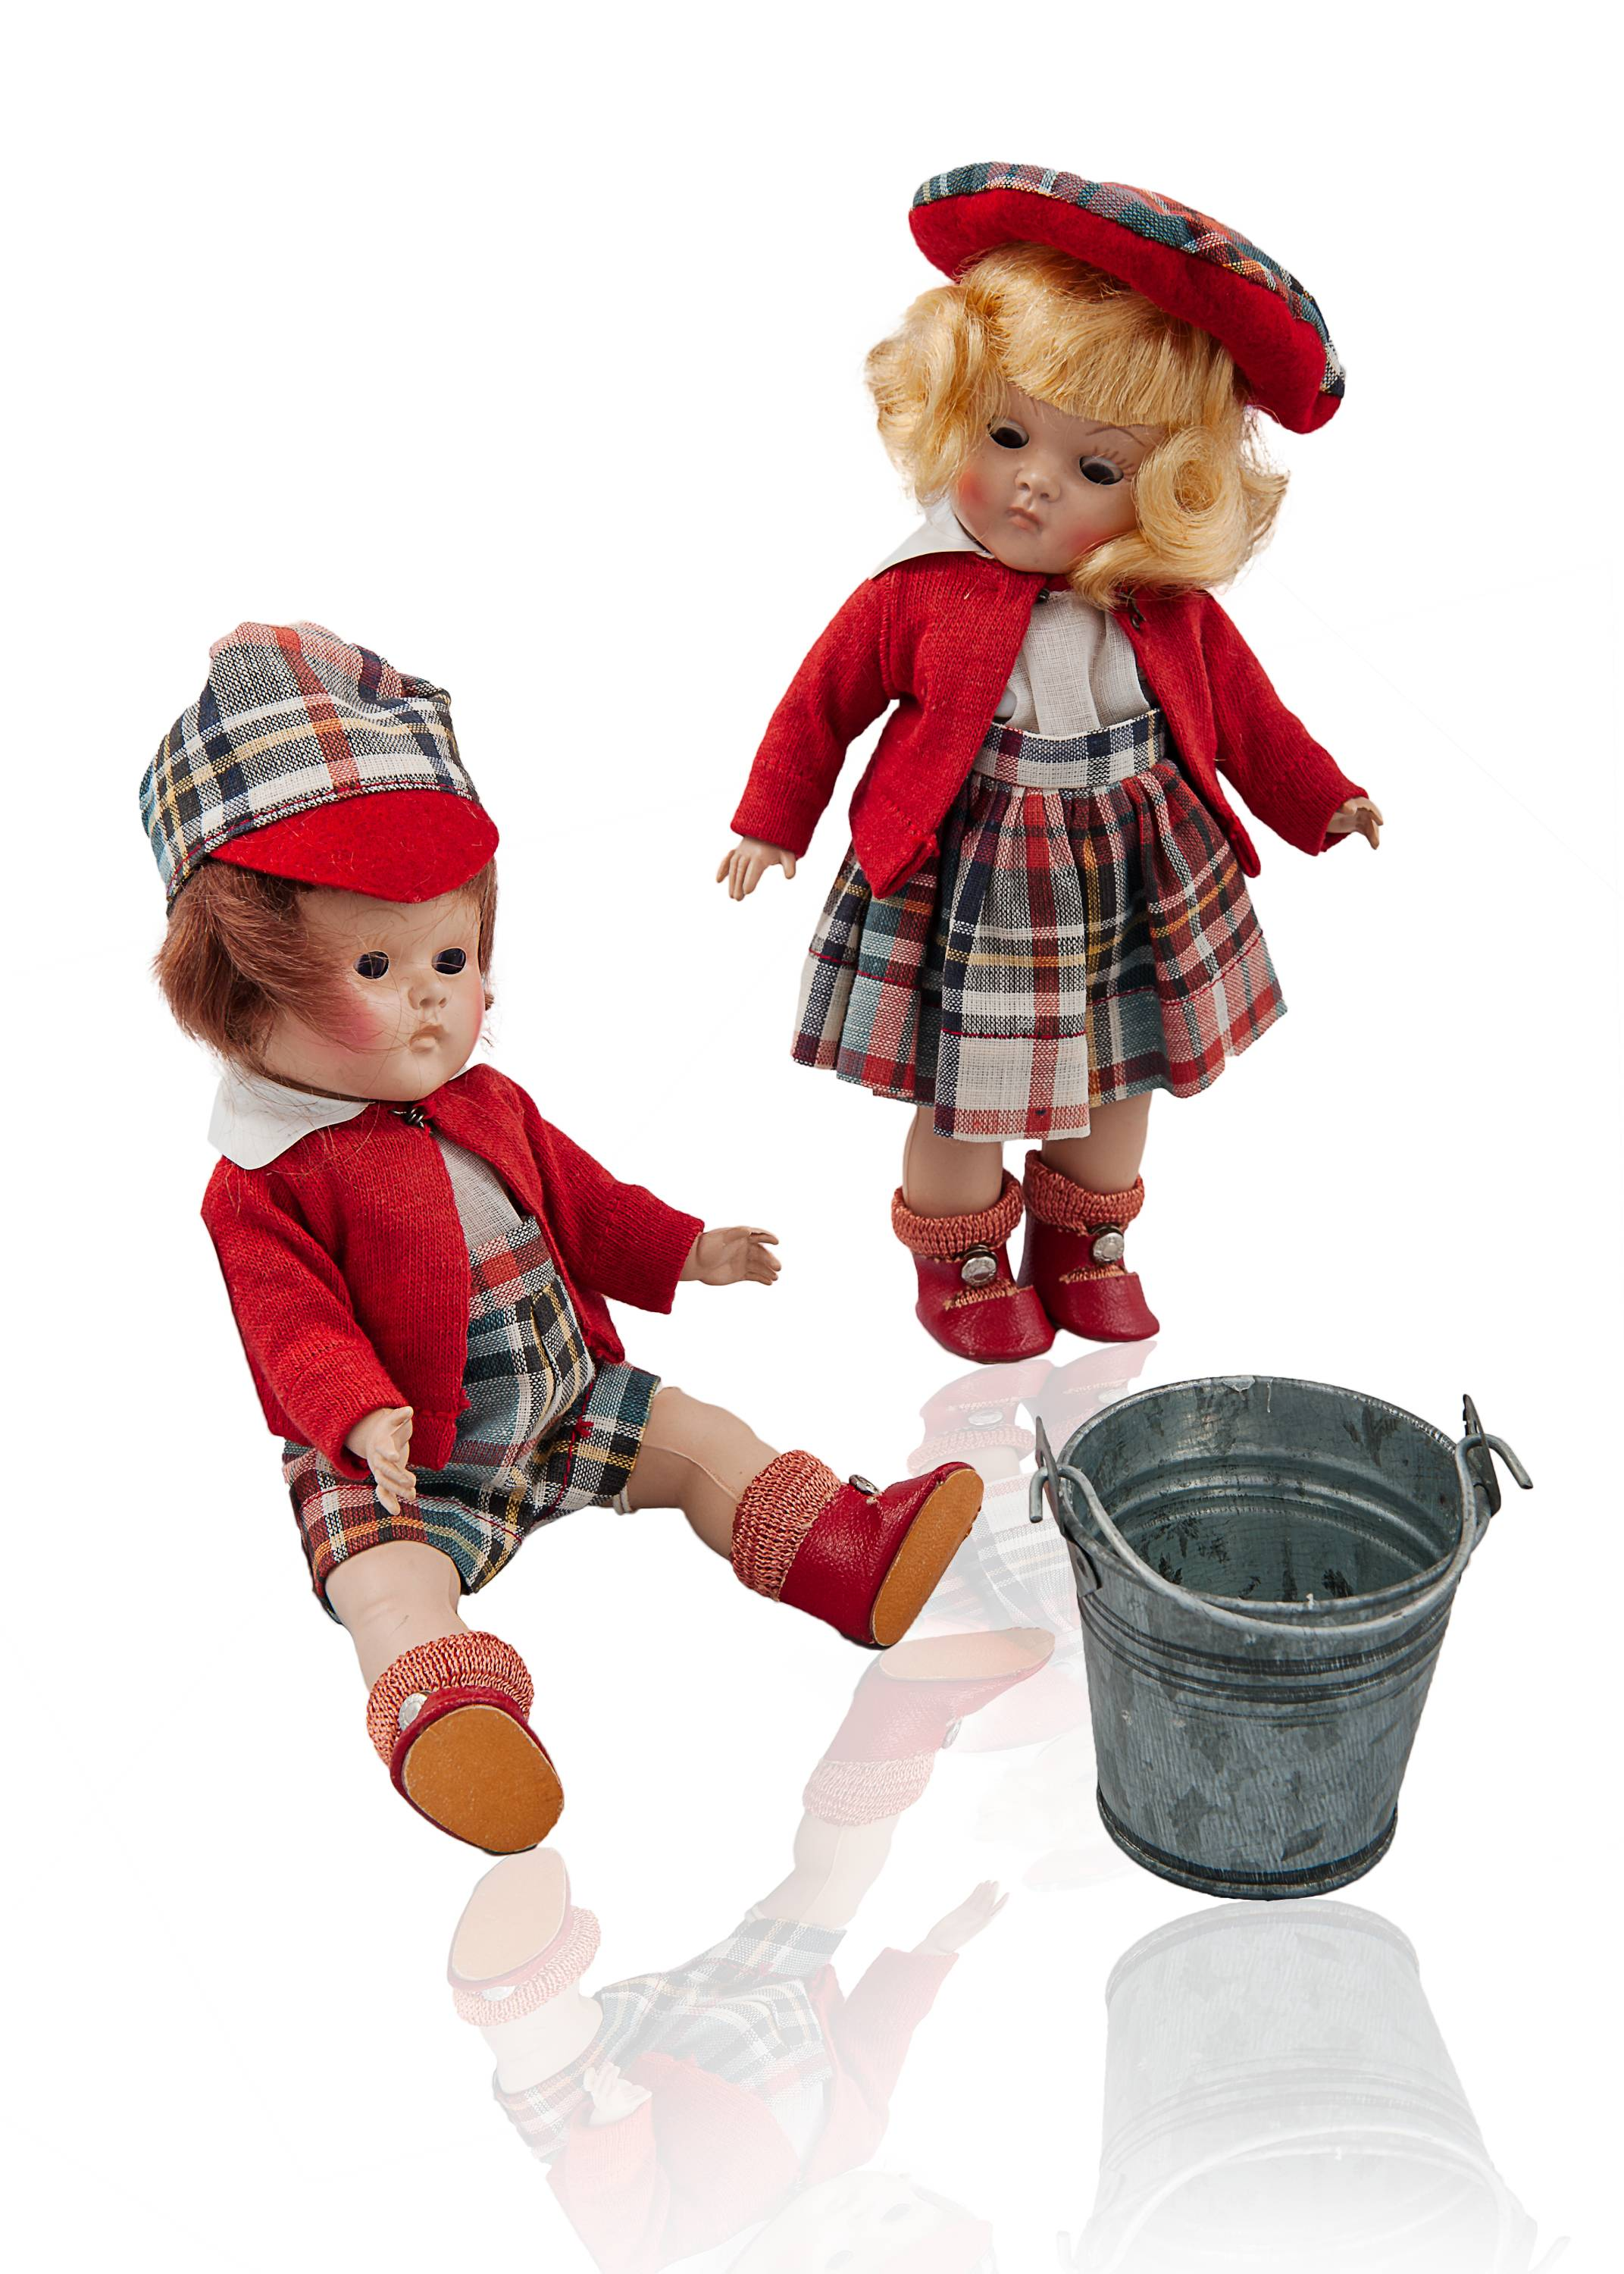 Dolls from the Martha Mills doll collection are paired with favorite nursery rhymes for the Doll Tea on Saturday, December 8.